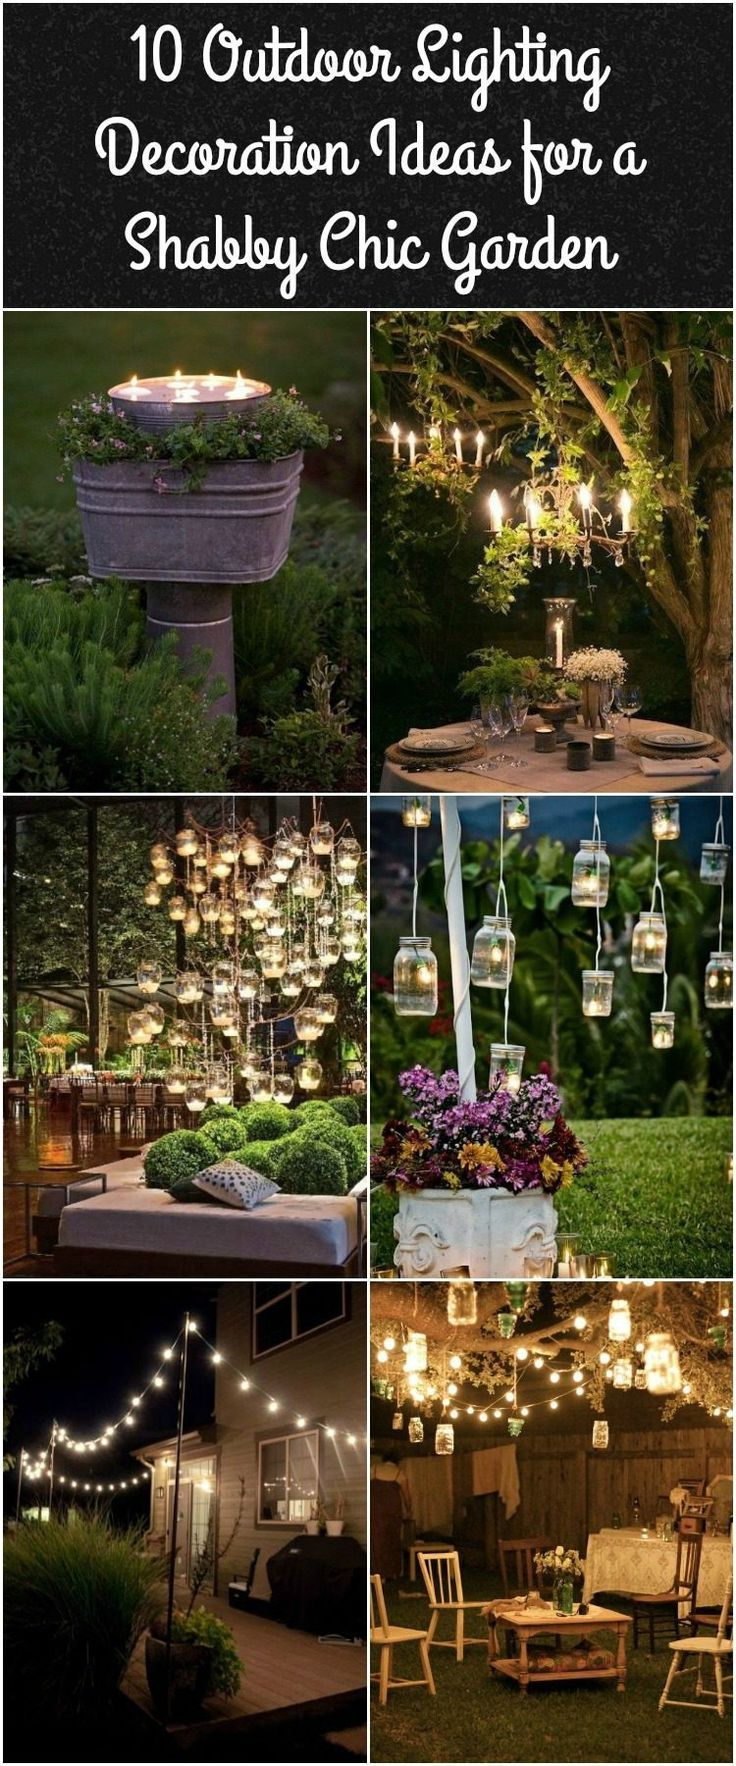 Yard wedding decoration ideas   Outdoor Lighting Ideas for a Shabby Chic Garden  is Lovely